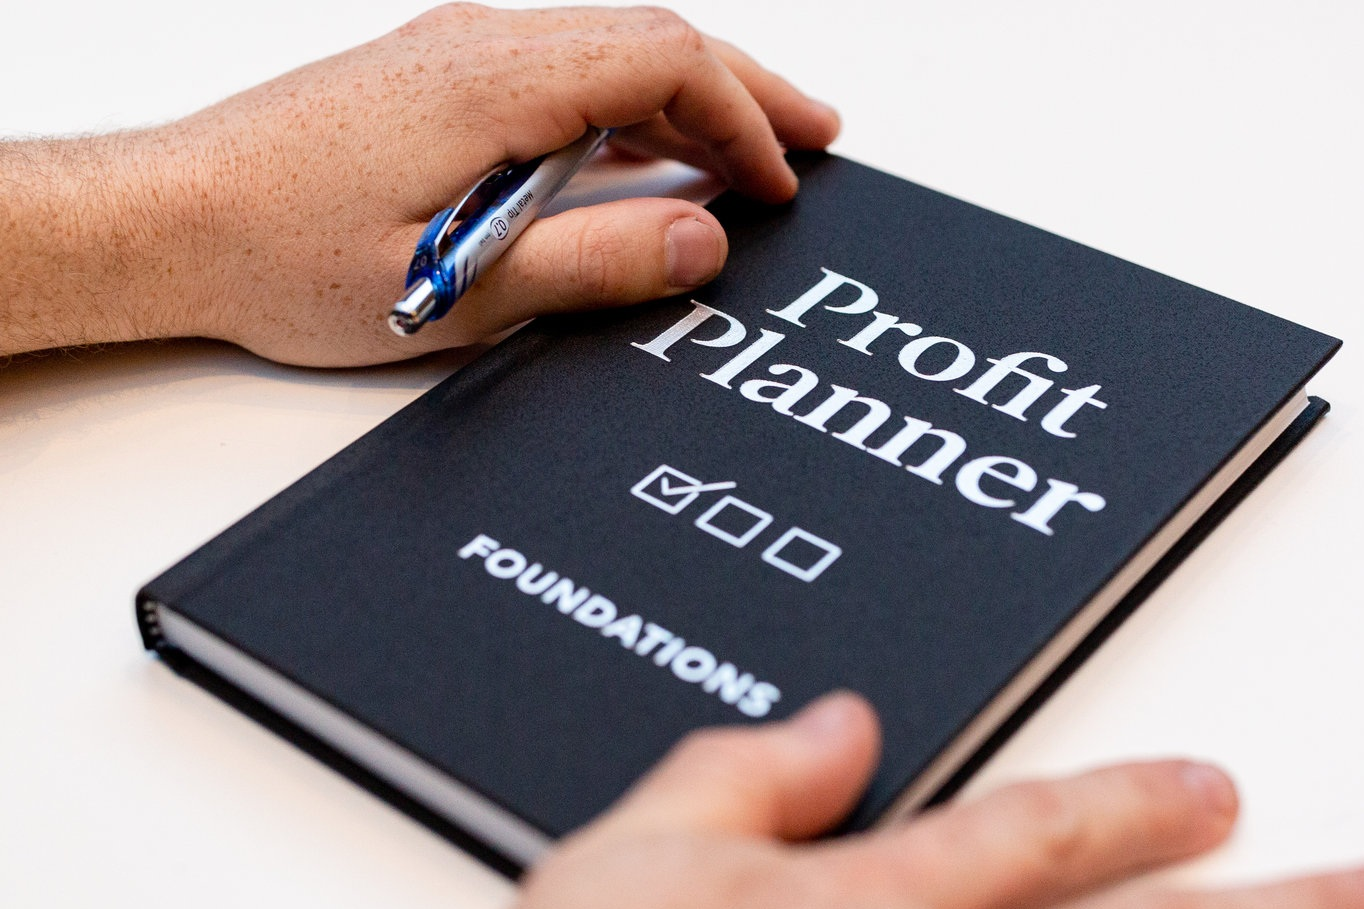 Click here to learn more about the Profit Planner -Use code KSA for 10% off